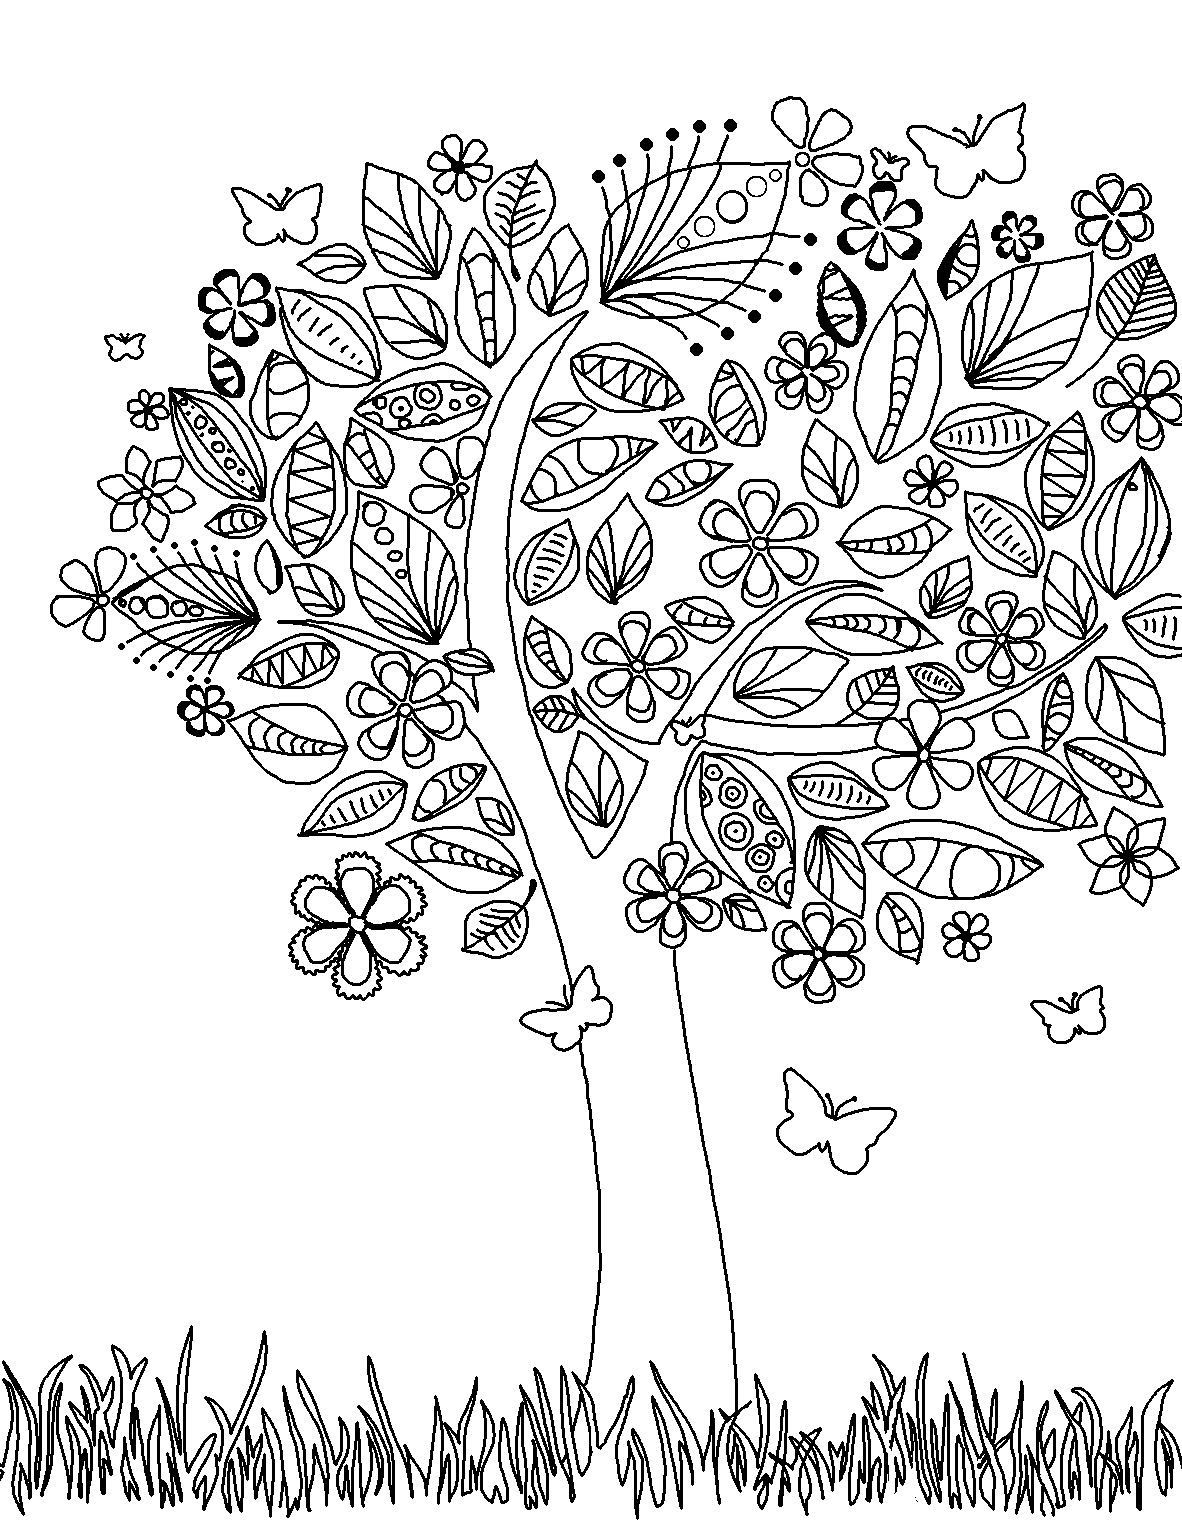 Free adult coloring pages my frugal adventures for Hard coloring pages